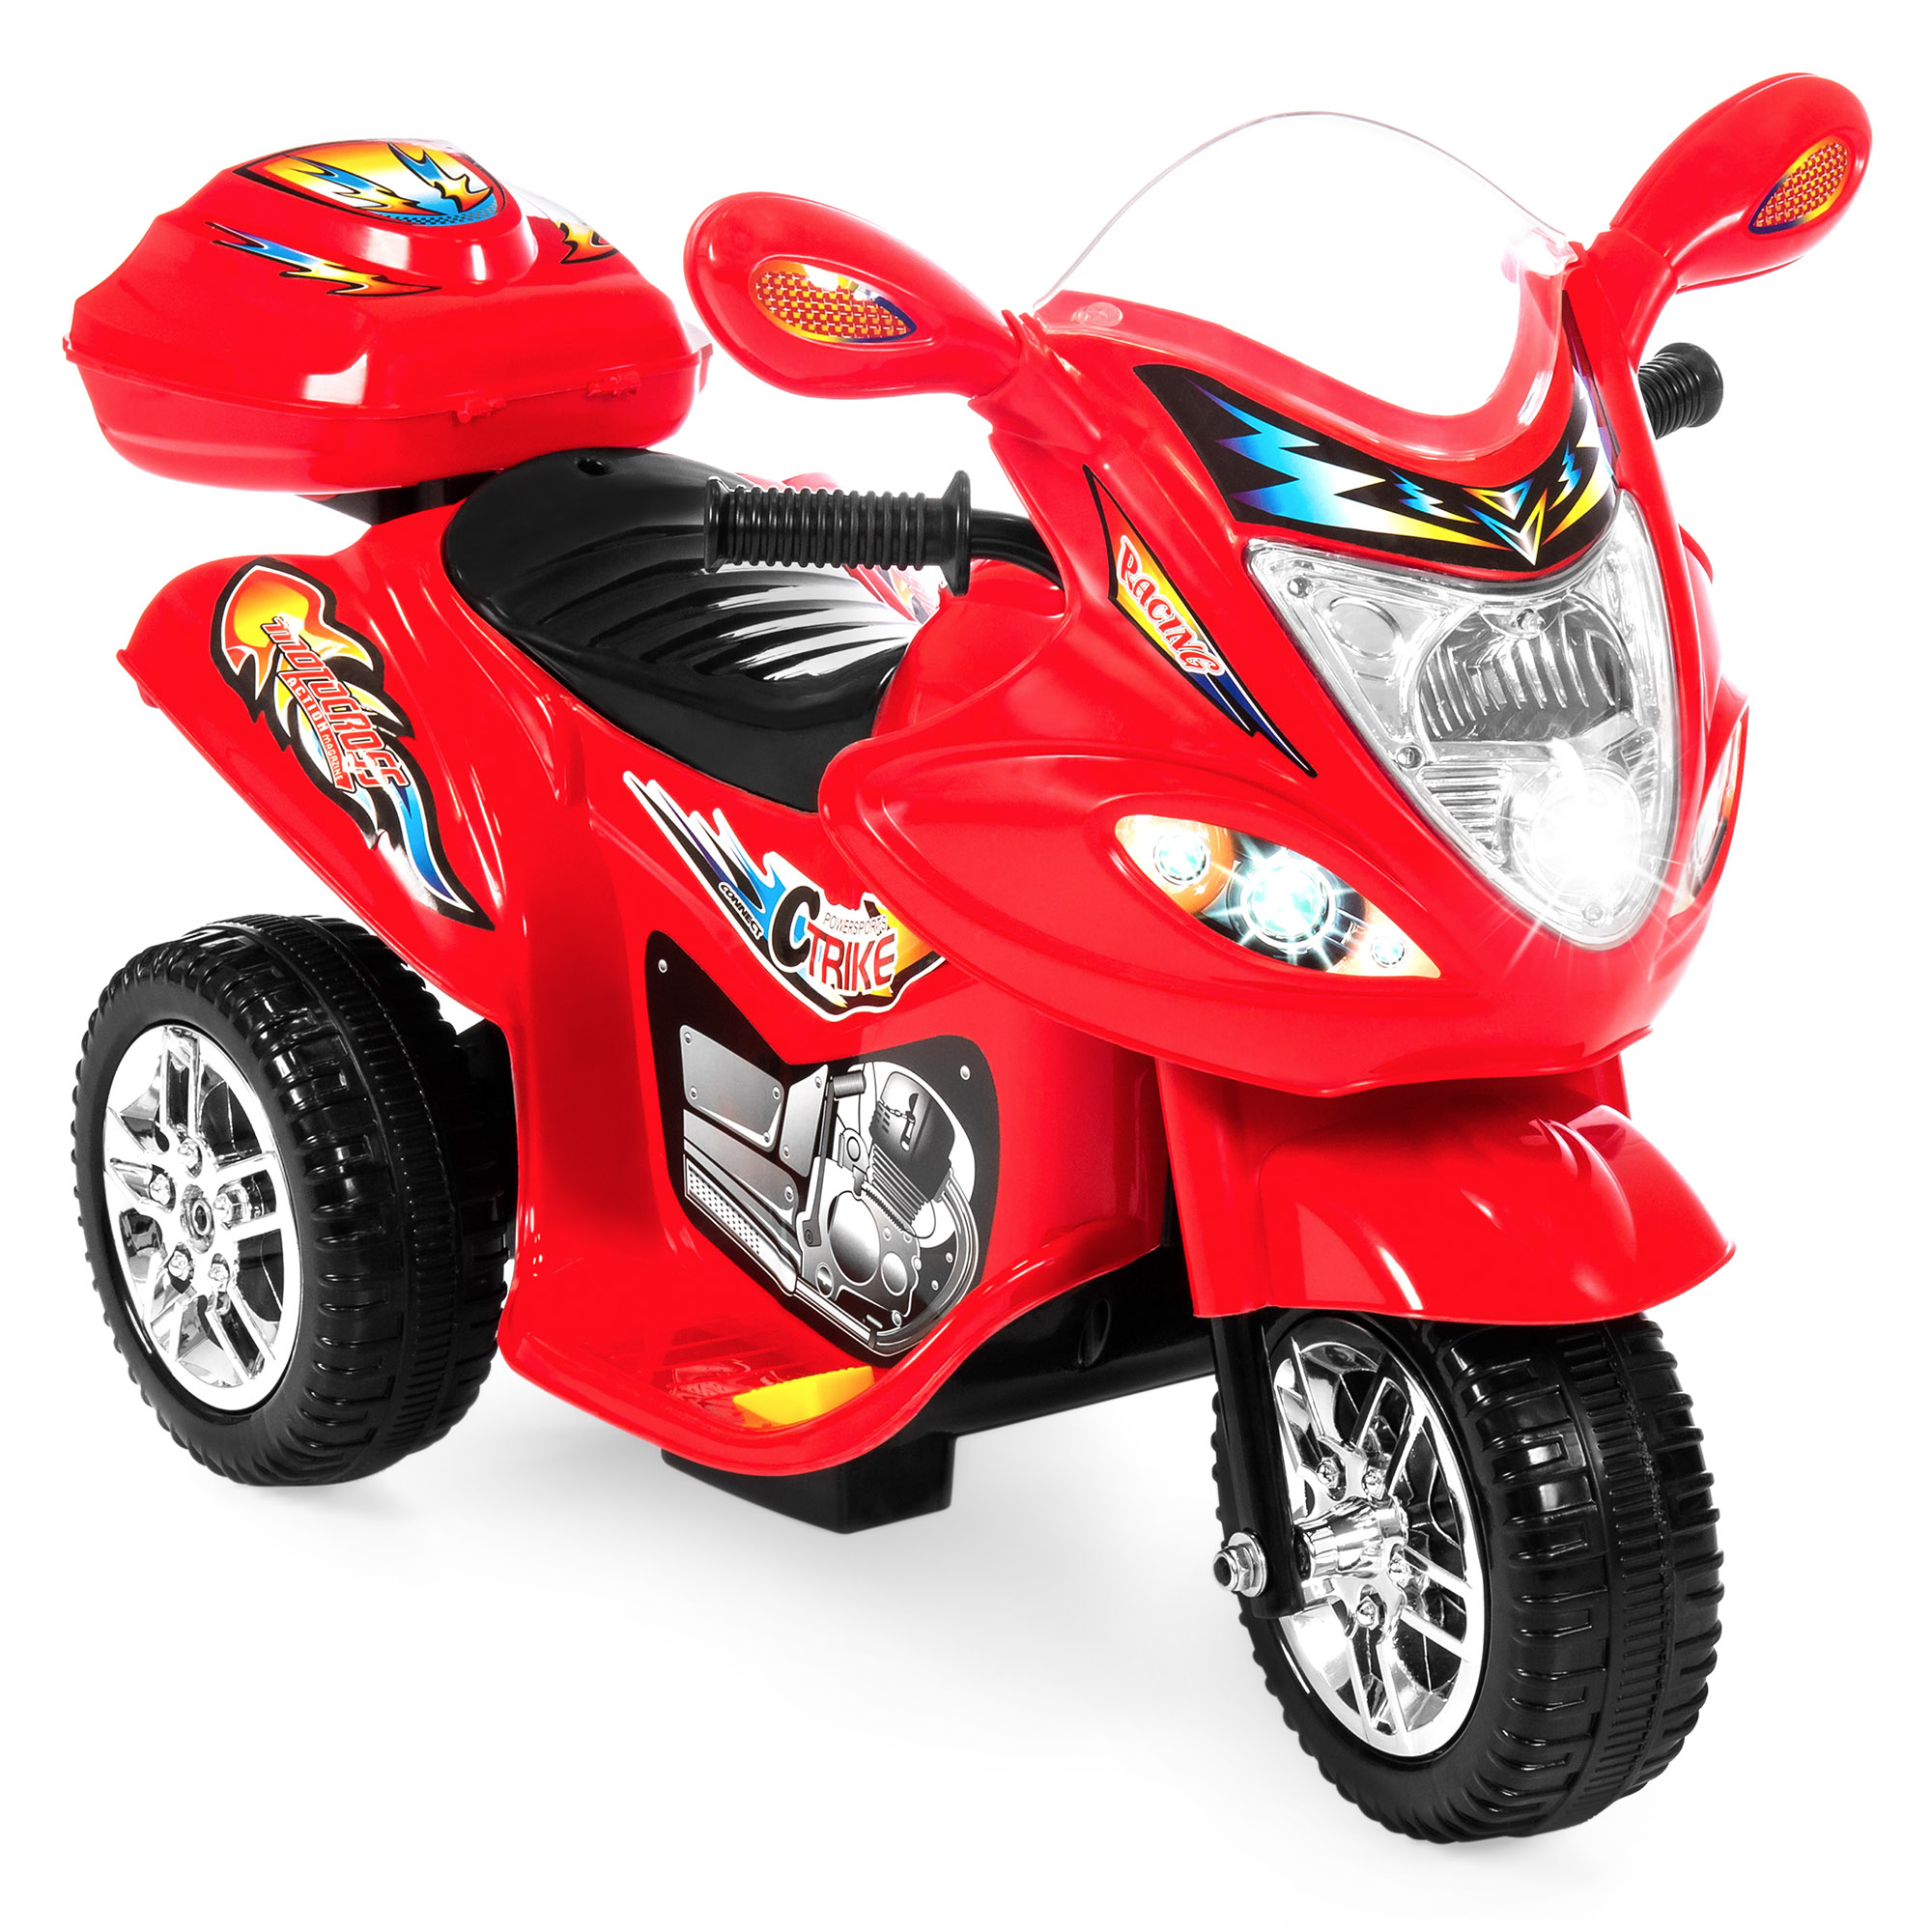 Best Choice Products 6V Kids Battery Powered Electric 3-Wheel Motorcycle Bike Ride-On...